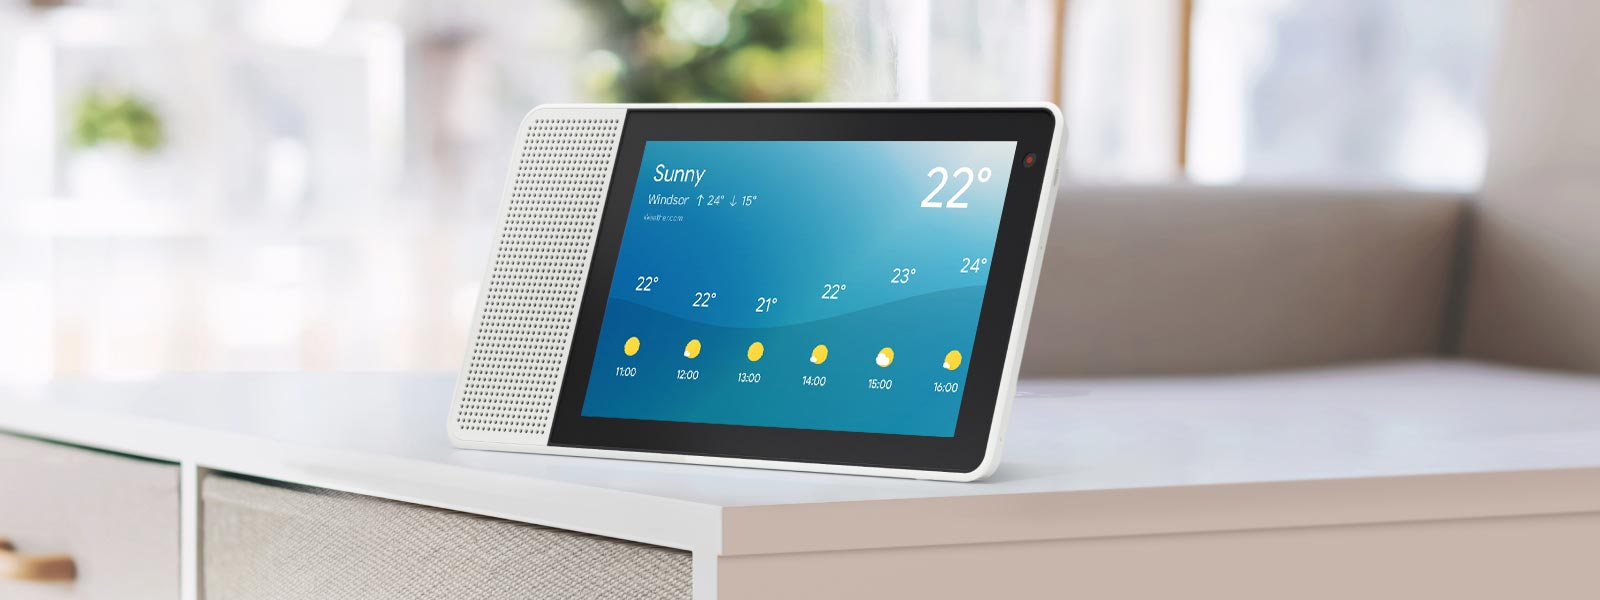 Lenovo Smart Display prepares you to meet your day with weather forecast.